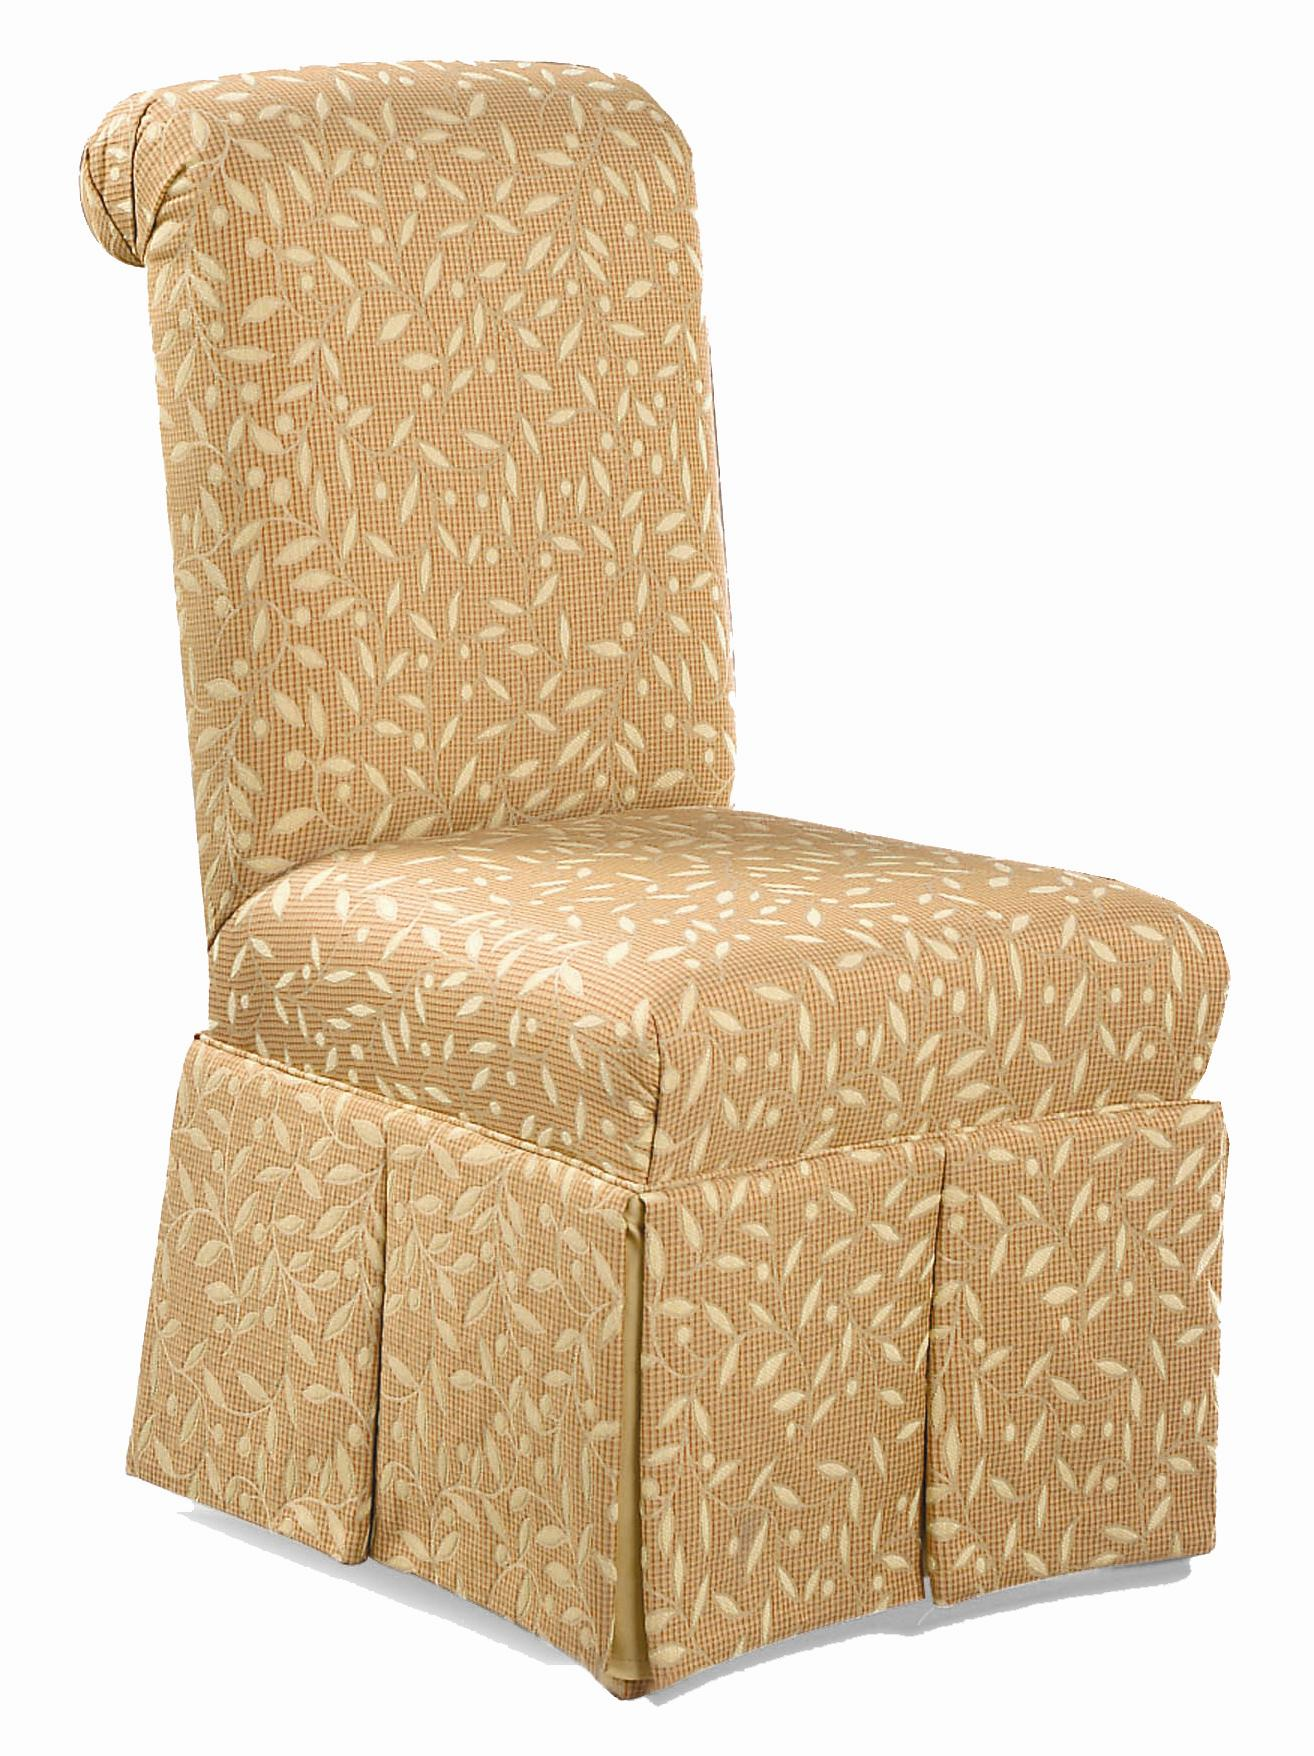 Fairfield Chairs Stationary Armless Chair - Item Number: 6061-01